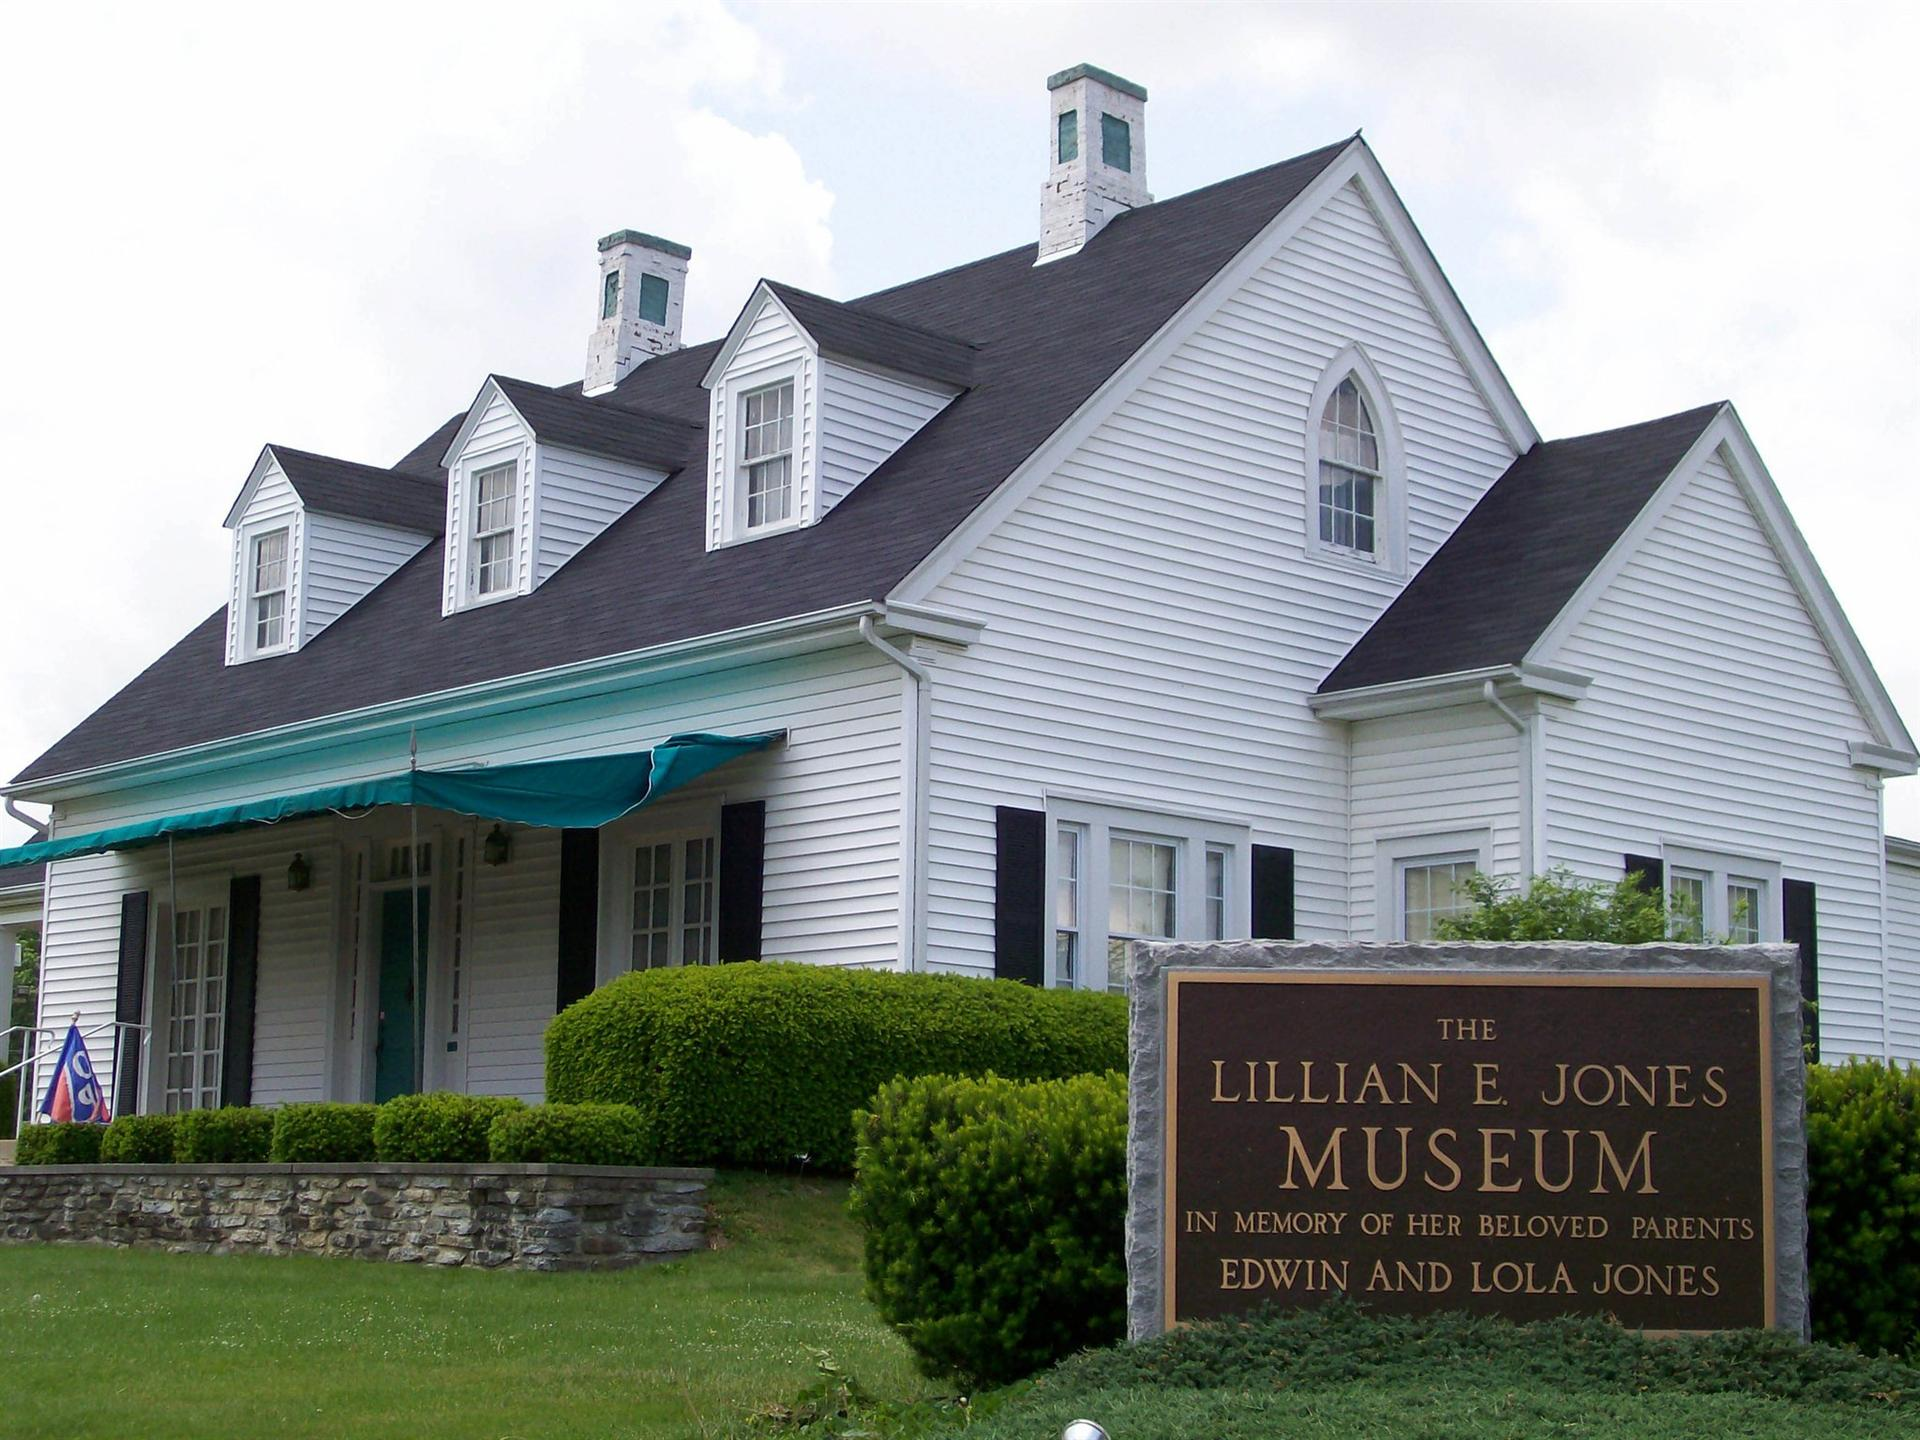 The exhibits showcased in the museum depict the history of Jackson on the local, national, and international level.